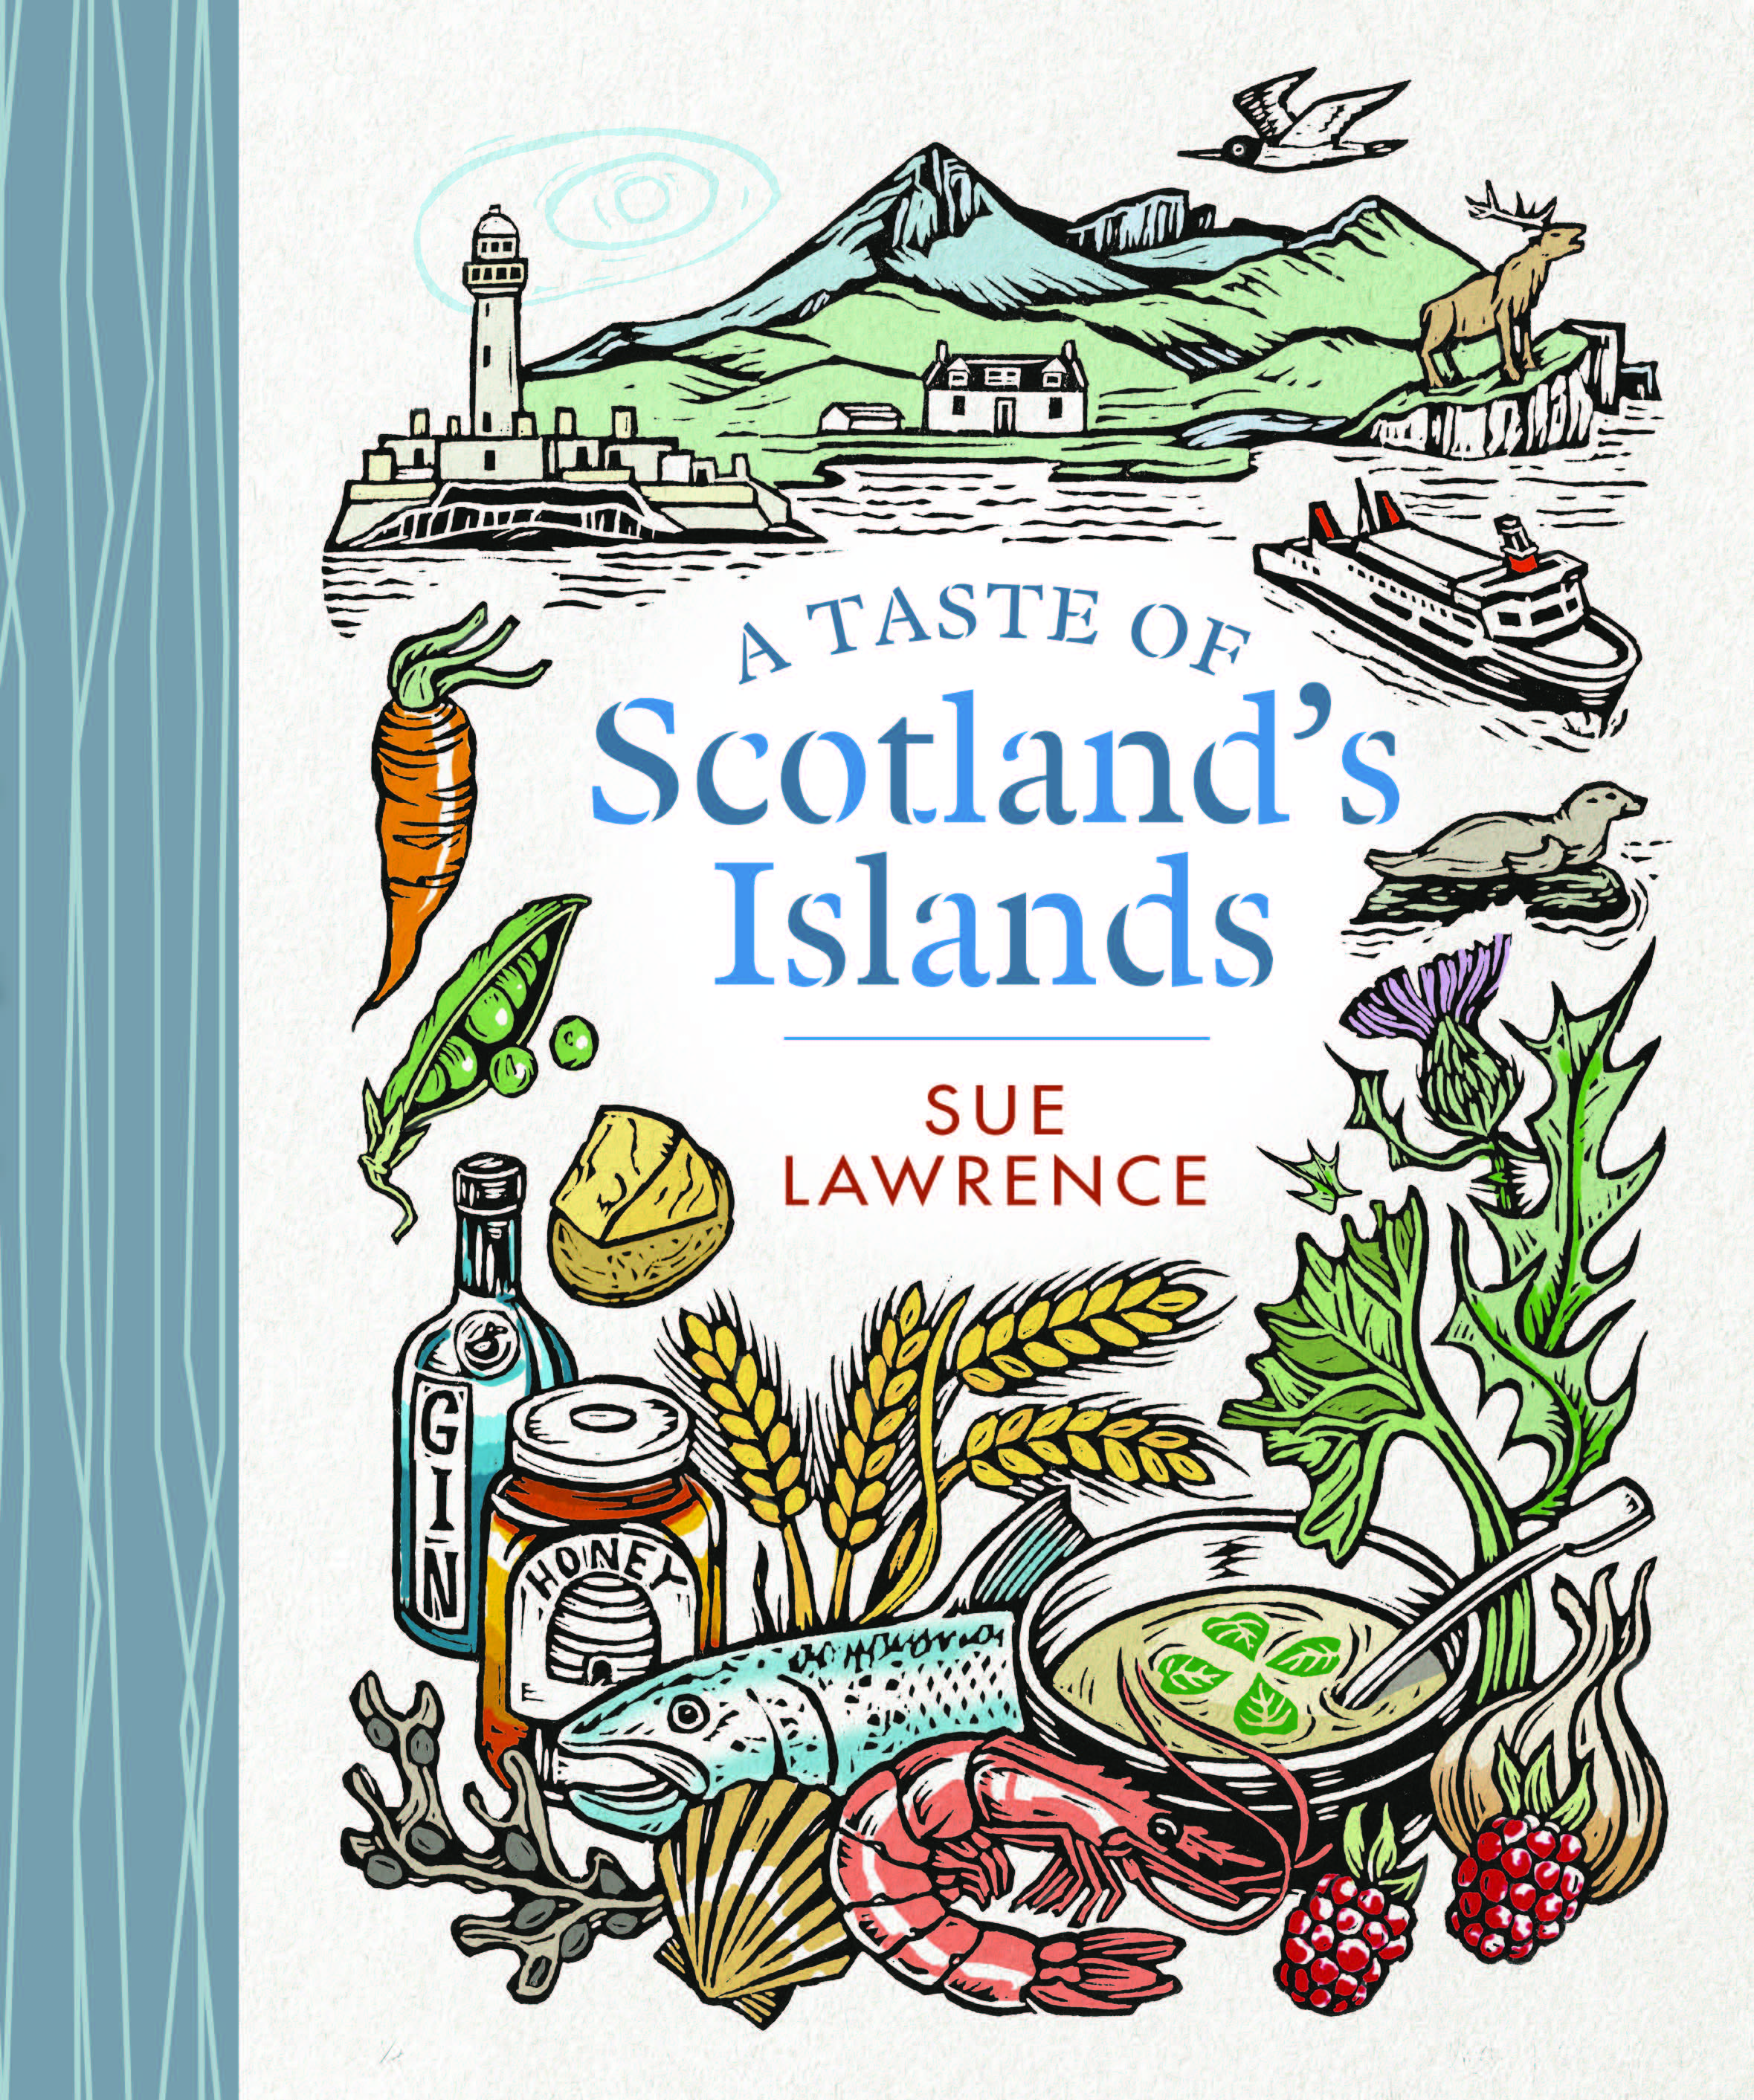 Taste of Scotland's Islands.jpg